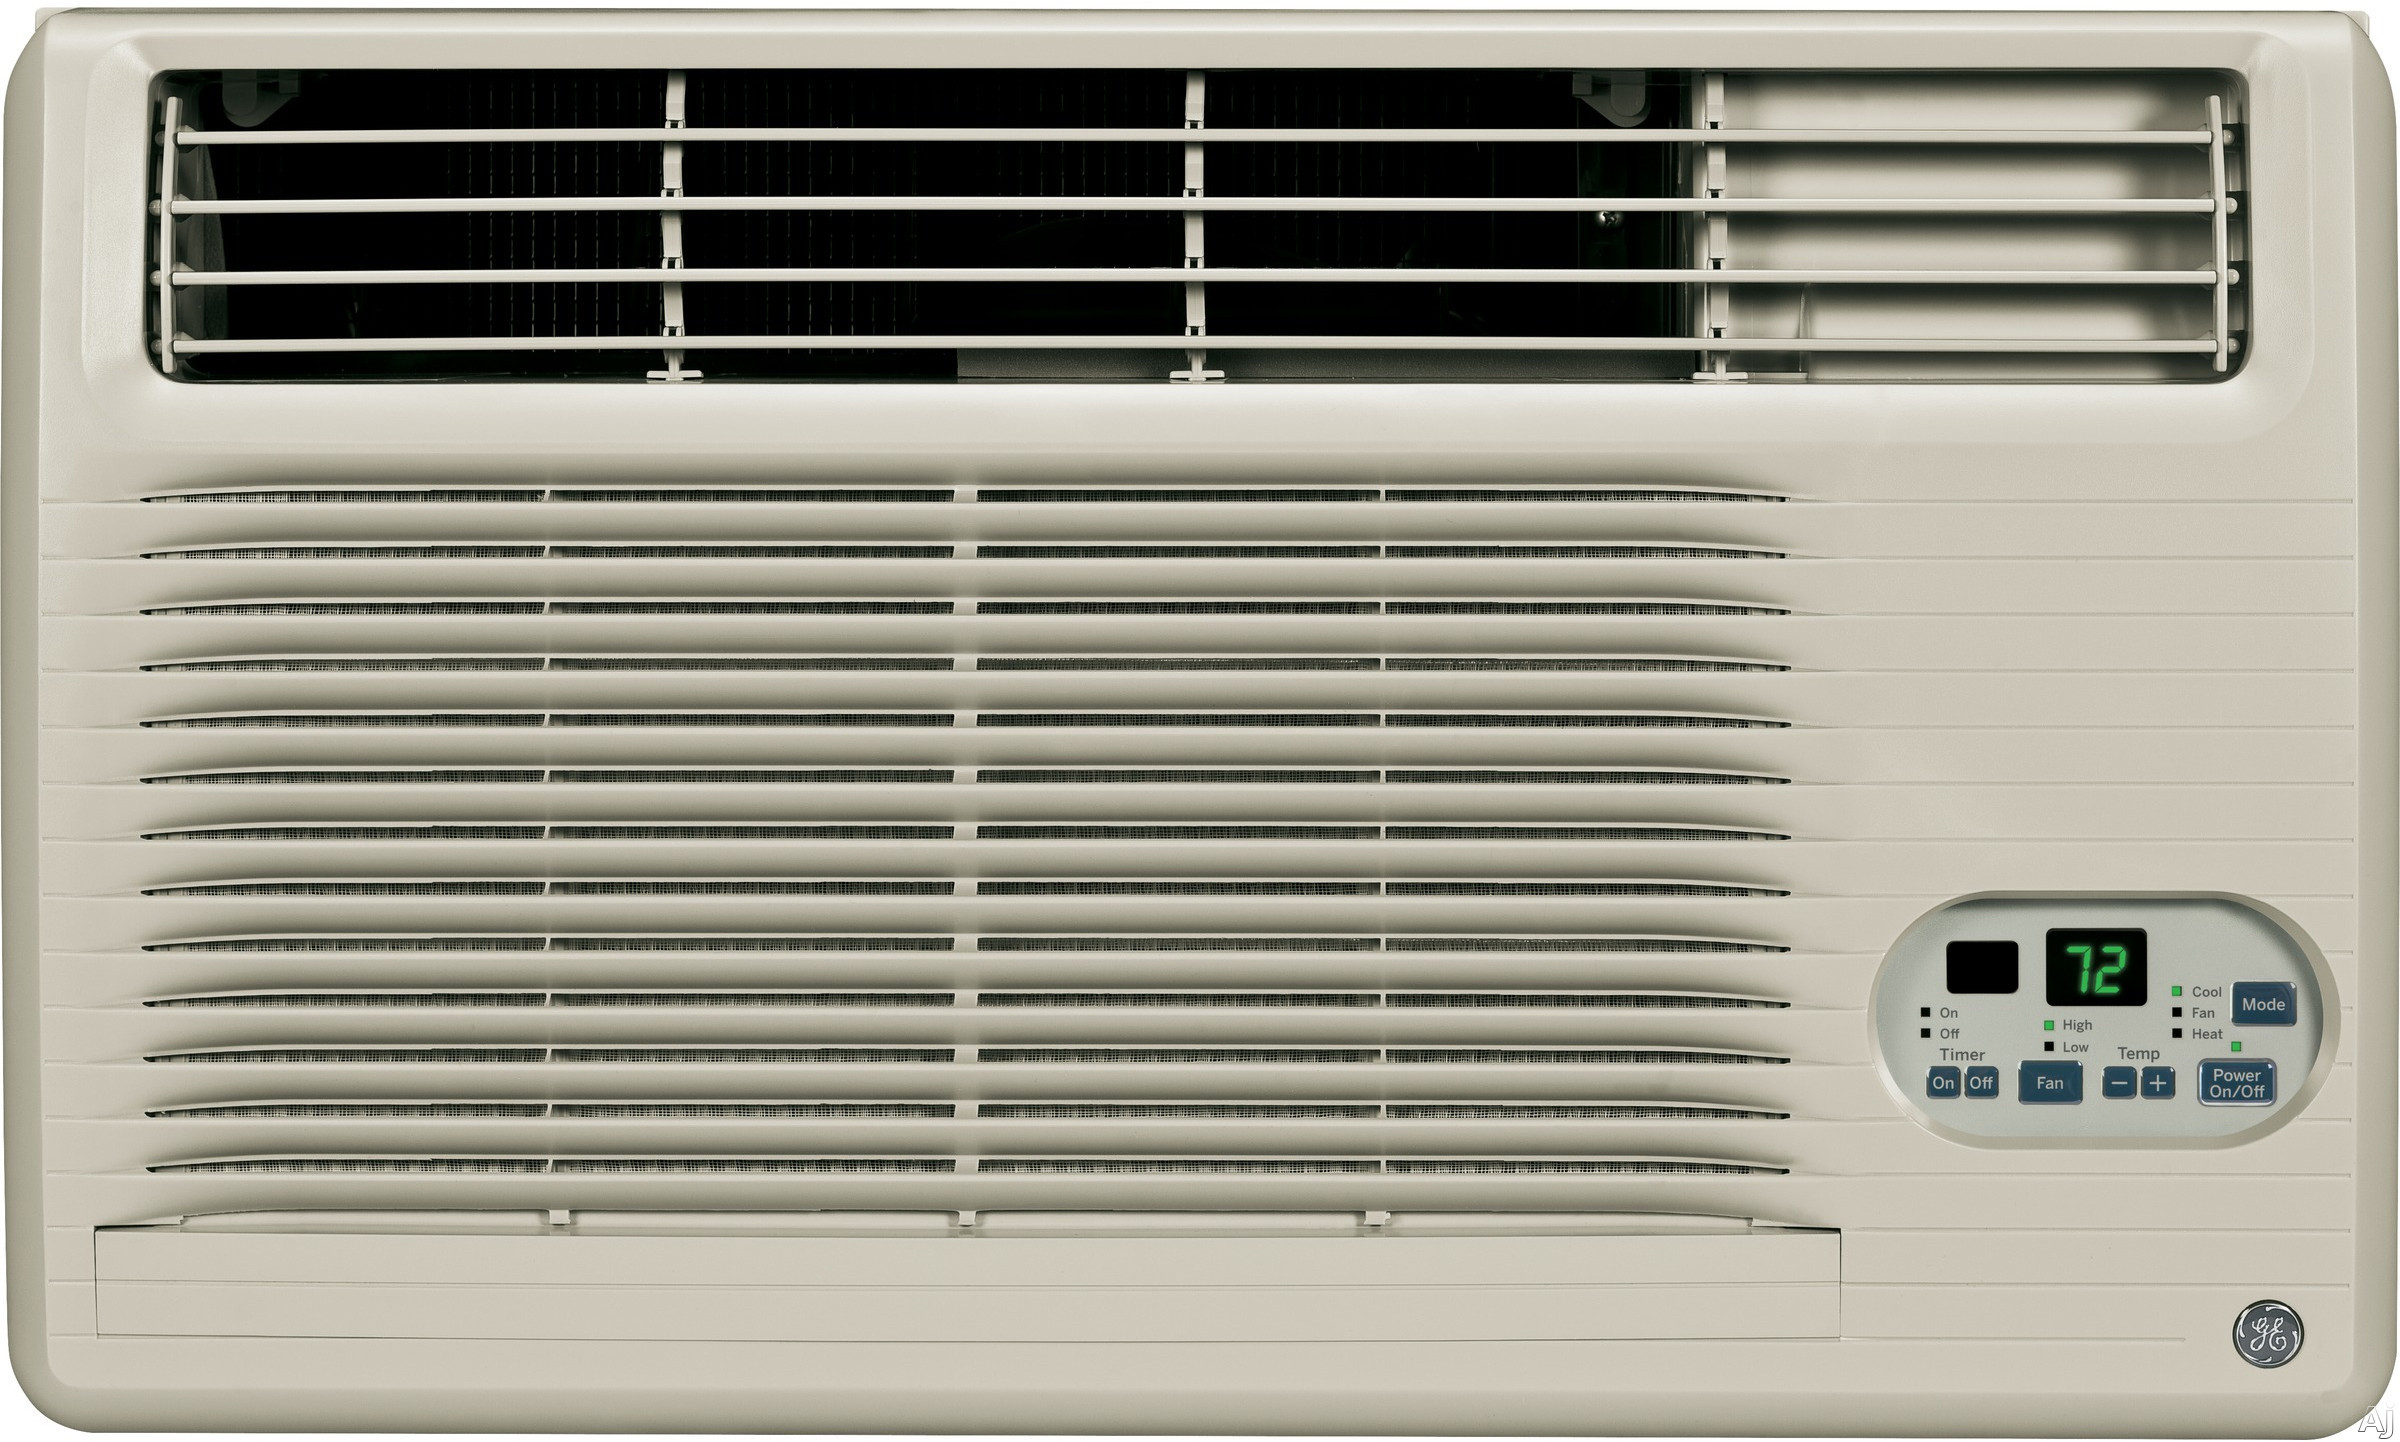 #385059 Image Disclaimer Highest Rated 14286 Through The Wall Air Conditioner With Heat img with 2400x1442 px on helpvideos.info - Air Conditioners, Air Coolers and more